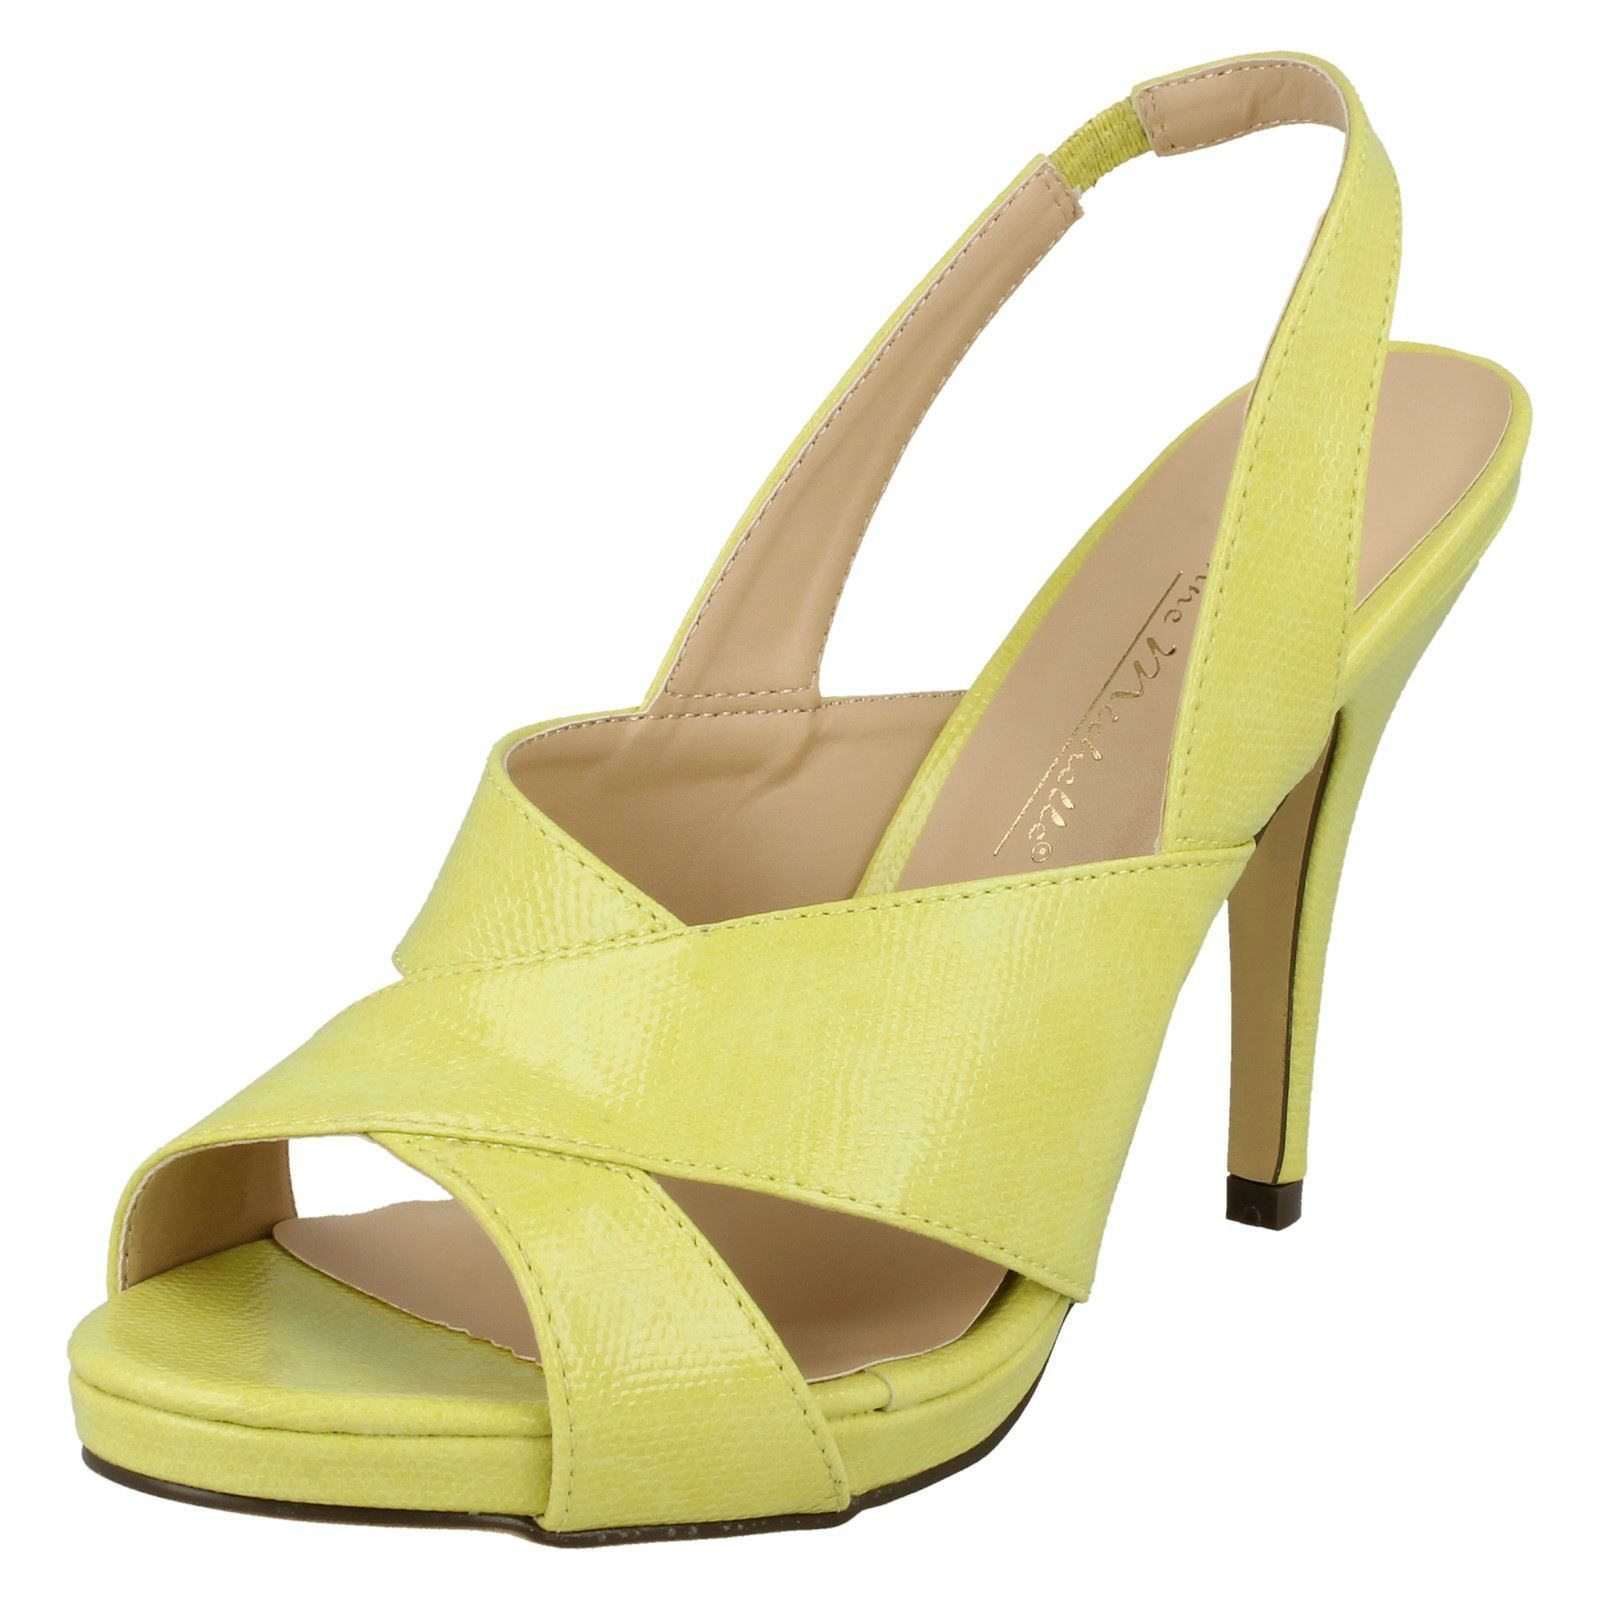 019ba4667ce Sentinel LADIES YELLOW SLING-BACK PLATFORM STILETTO STRAPPY SANDALS SHOES  PUMPS SIZES 3-8